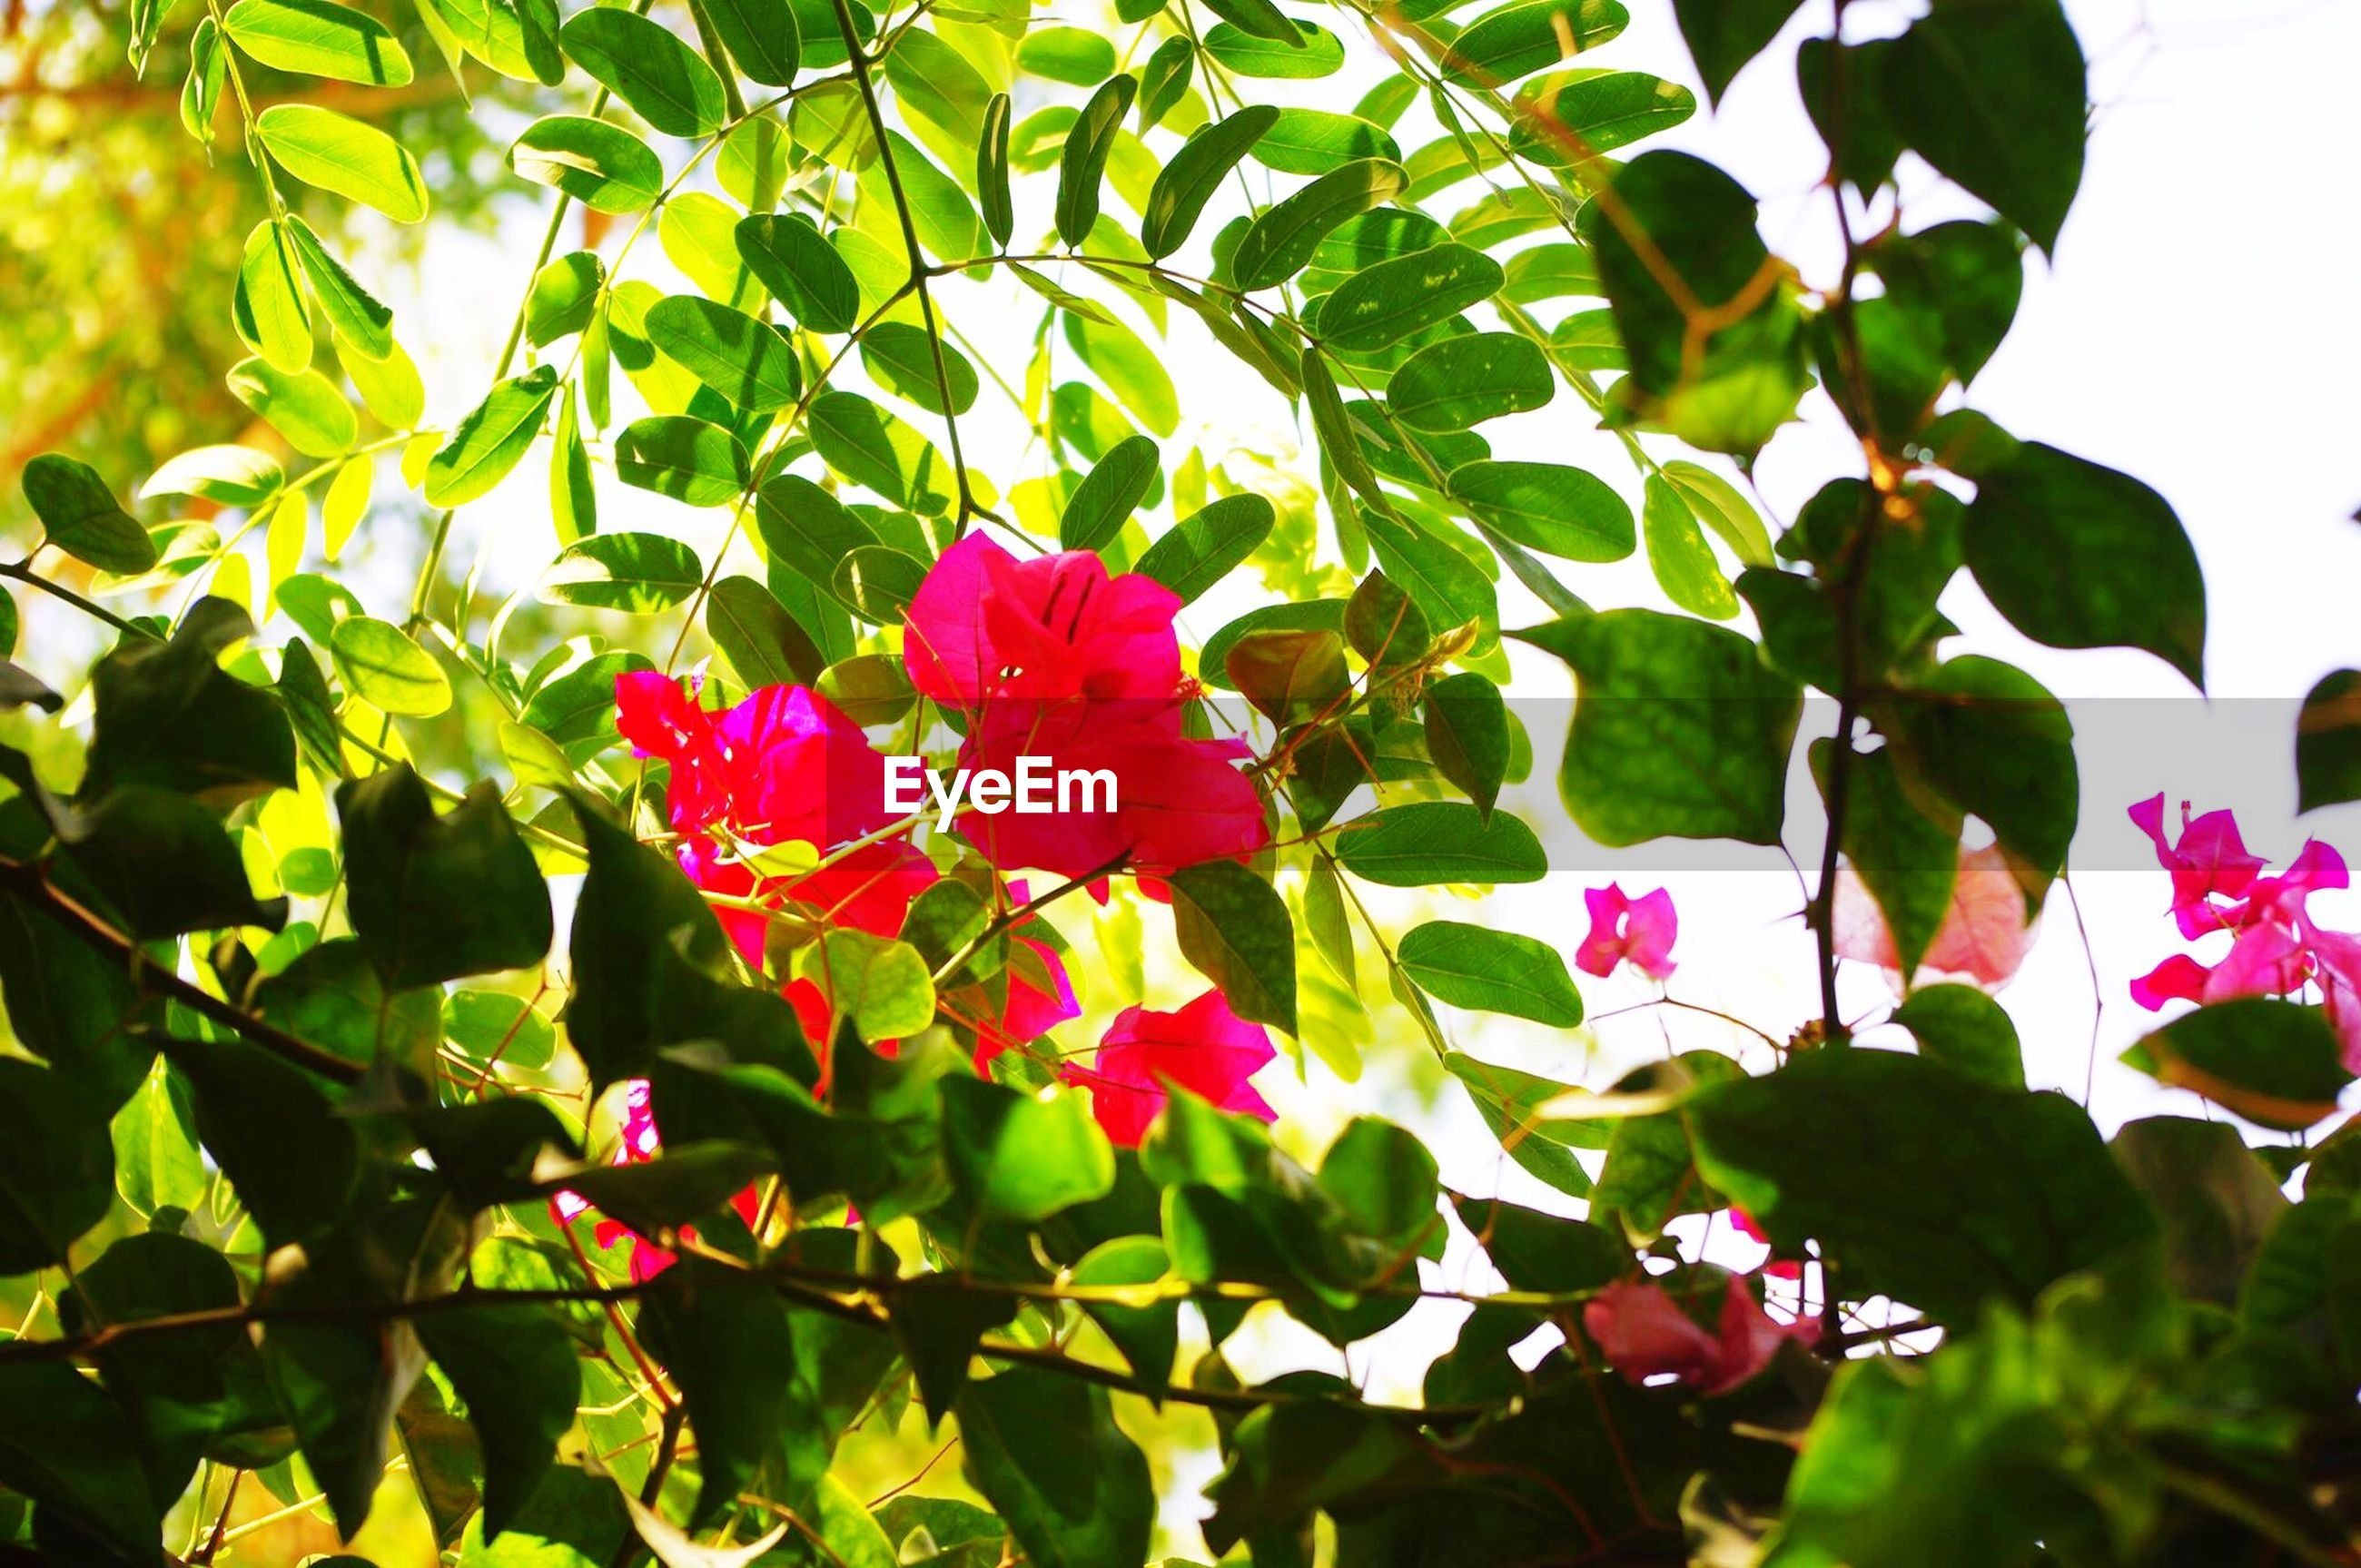 flower, freshness, leaf, growth, fragility, close-up, beauty in nature, petal, pink color, in bloom, springtime, nature, botany, plant, green color, flower head, selective focus, blossom, red, day, vibrant color, branch, outdoors, green, focus on foreground, softness, blooming, tranquility